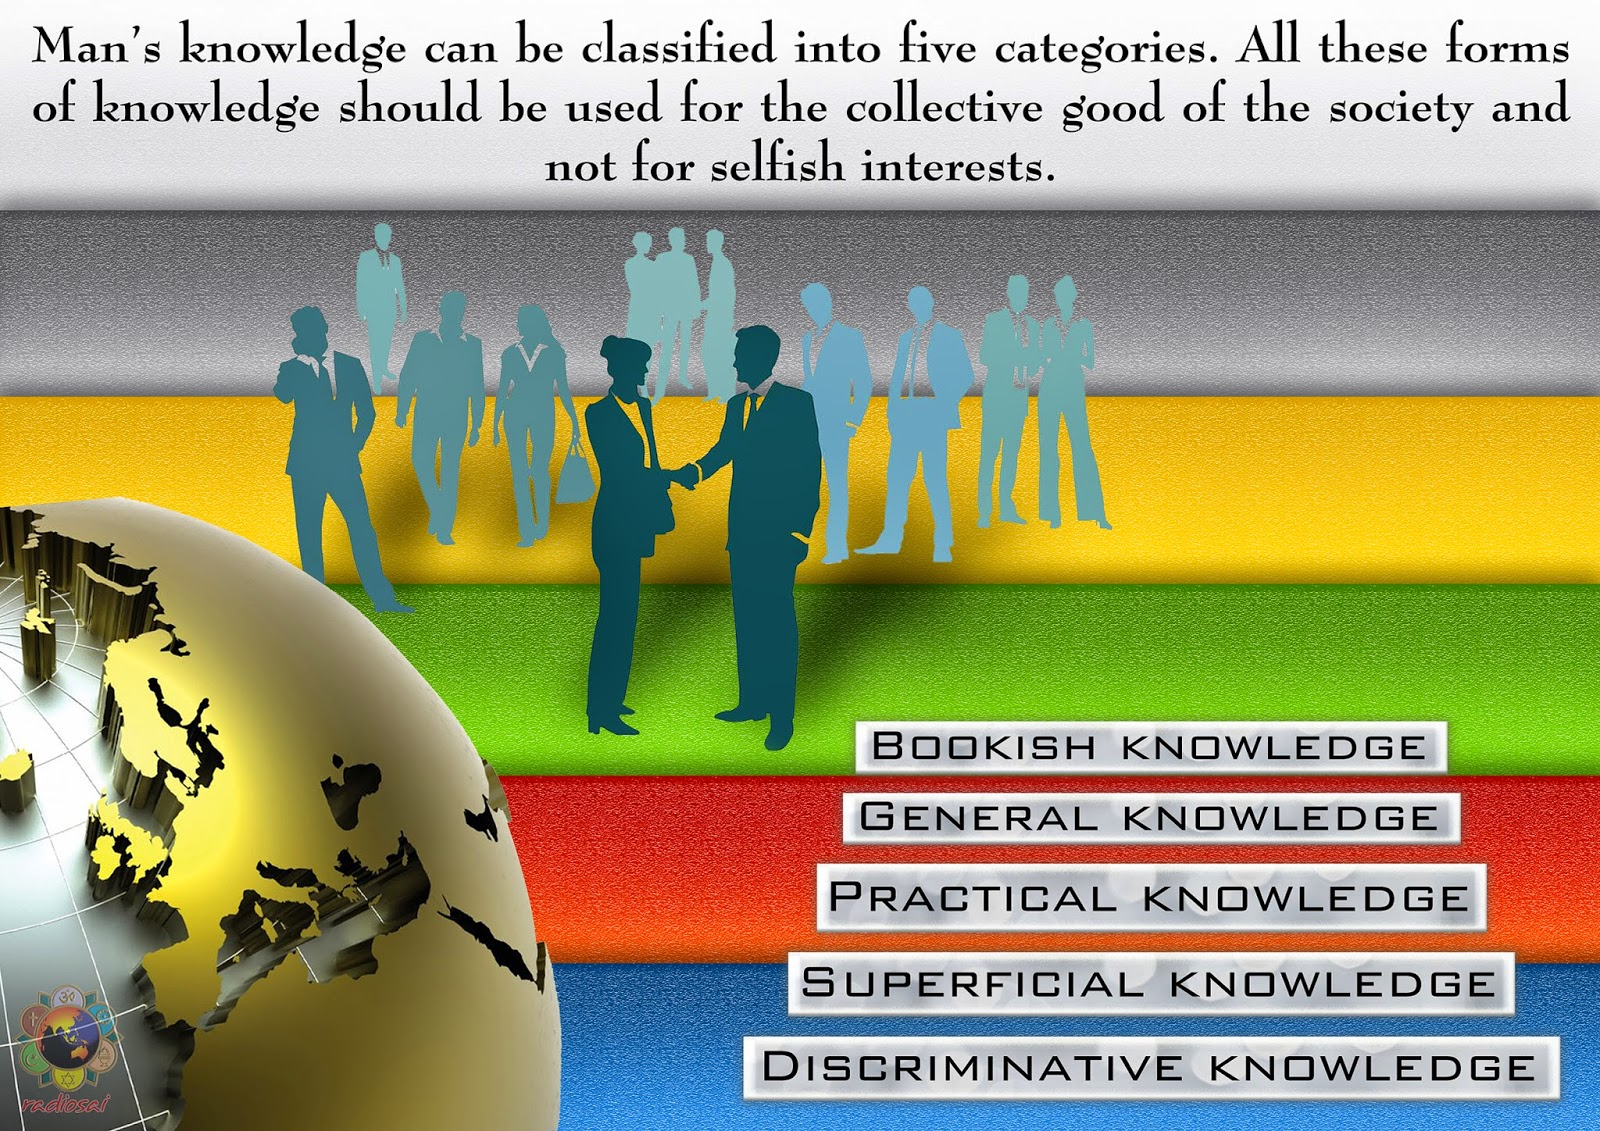 bookish knowledge verses practical knowledge 1knowledge refers to theoretical information acquired about any subject whereas skills refer to practical application of that knowledge 2knowledge can be learned whereas skills require practical exposure and can also be in-born.